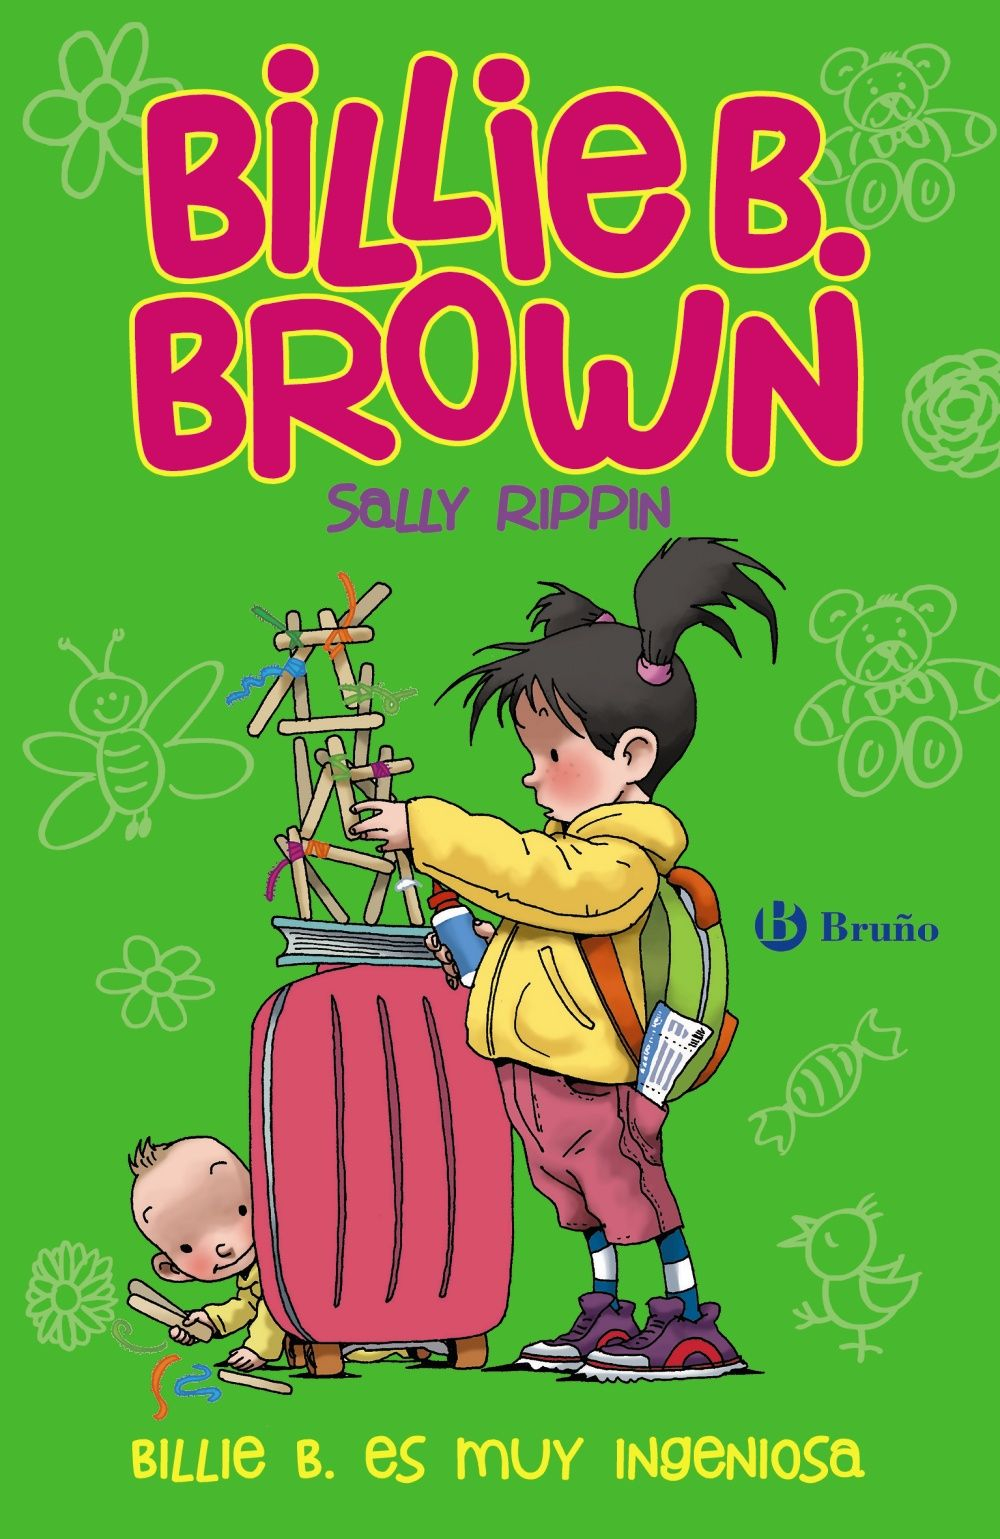 BILLIE B. BROWN, 6. BILLIE B. ES MUY INGENIOSA